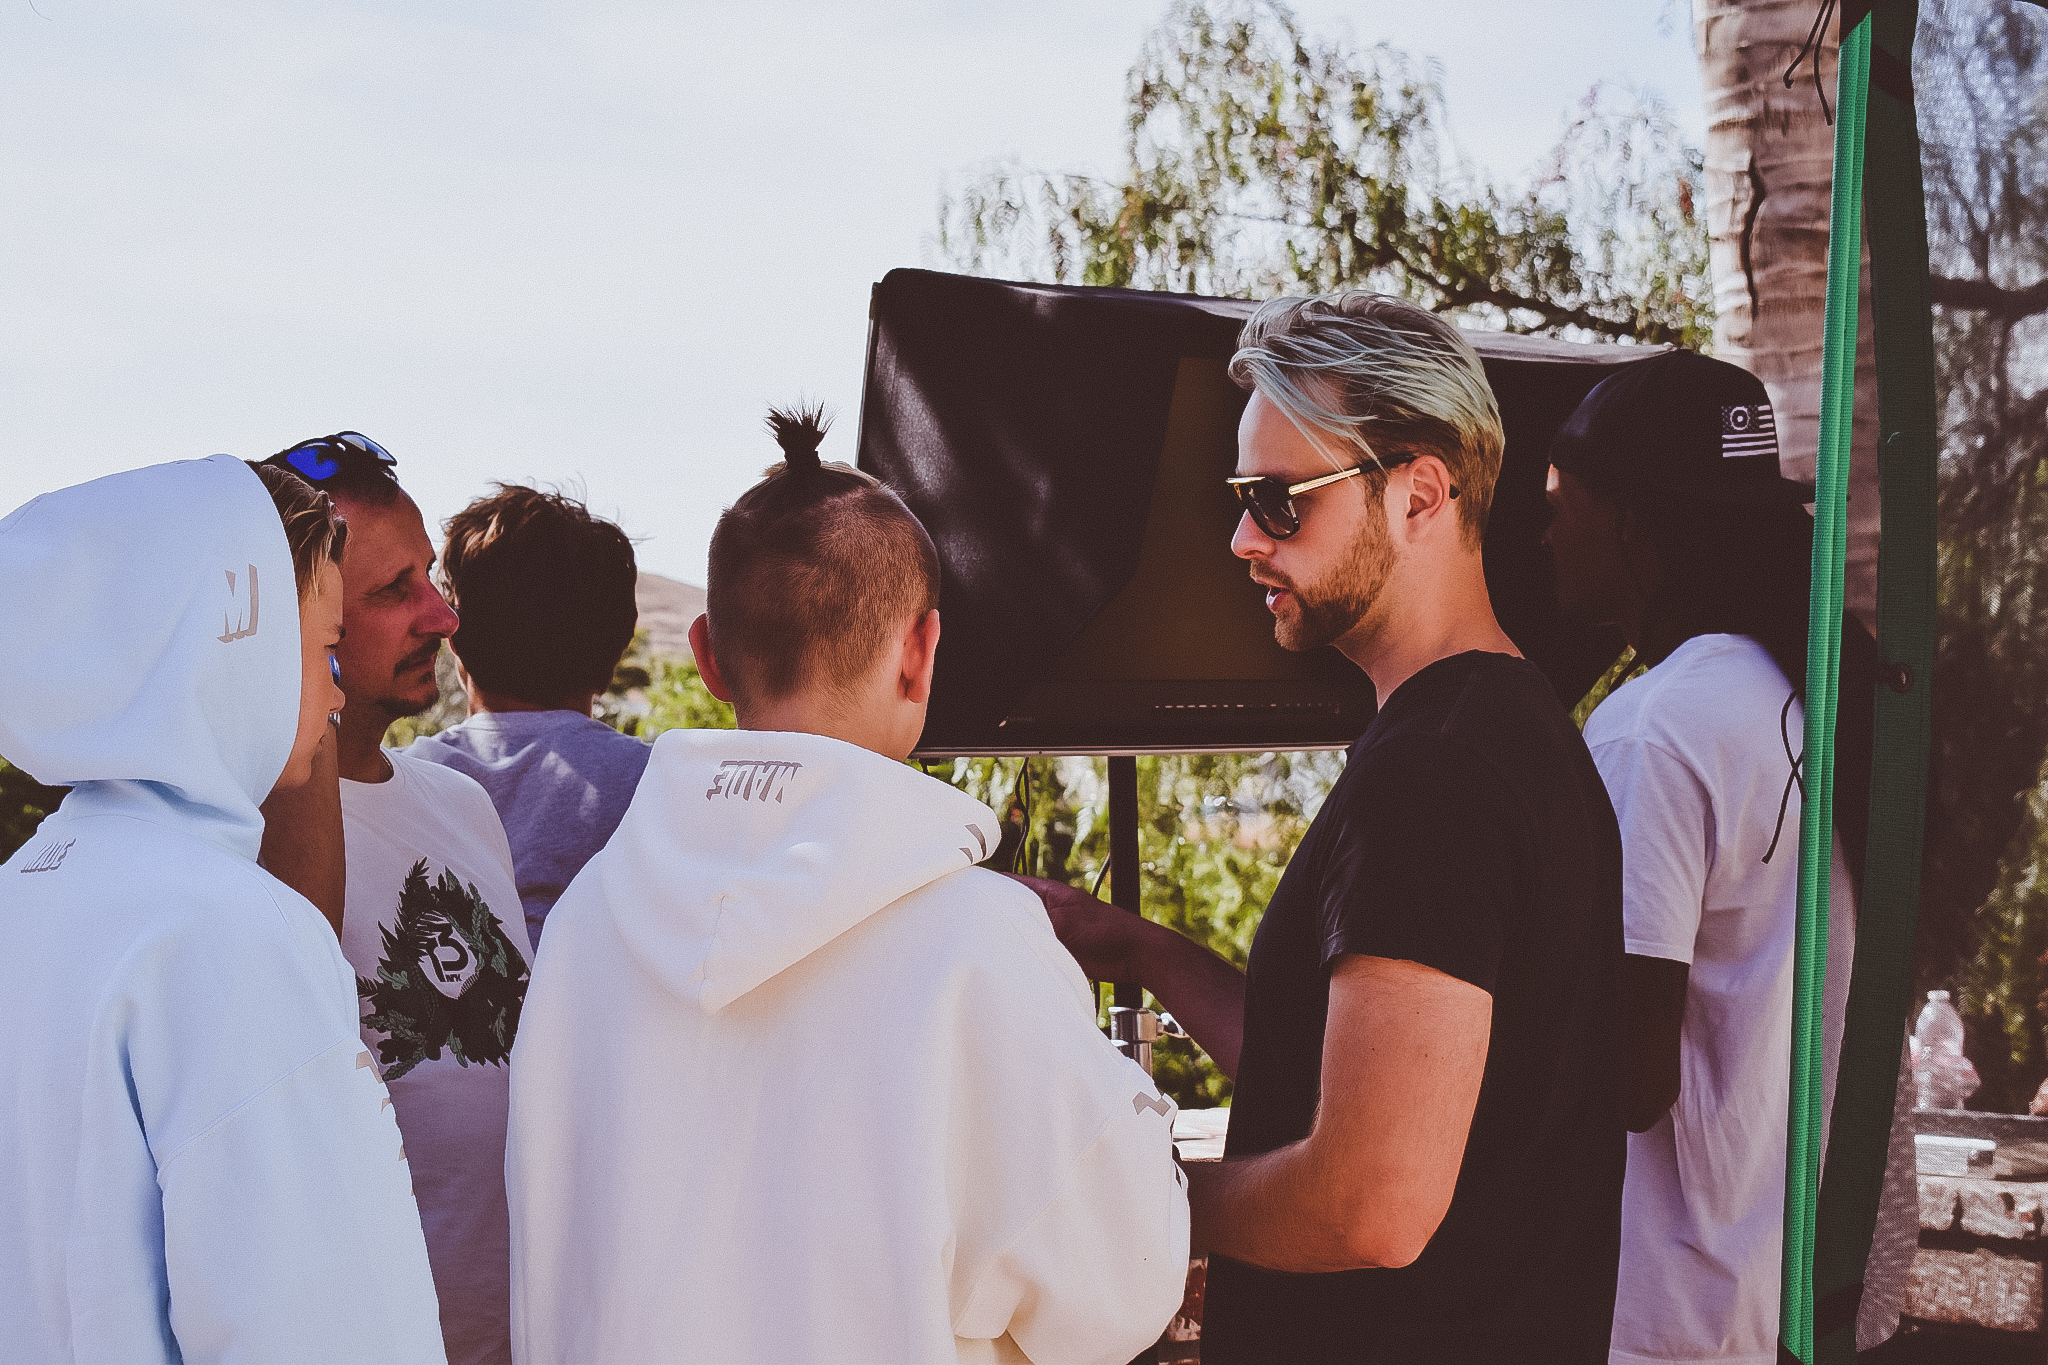 marcus-and-martinus-behind-the-scenes-05.jpg